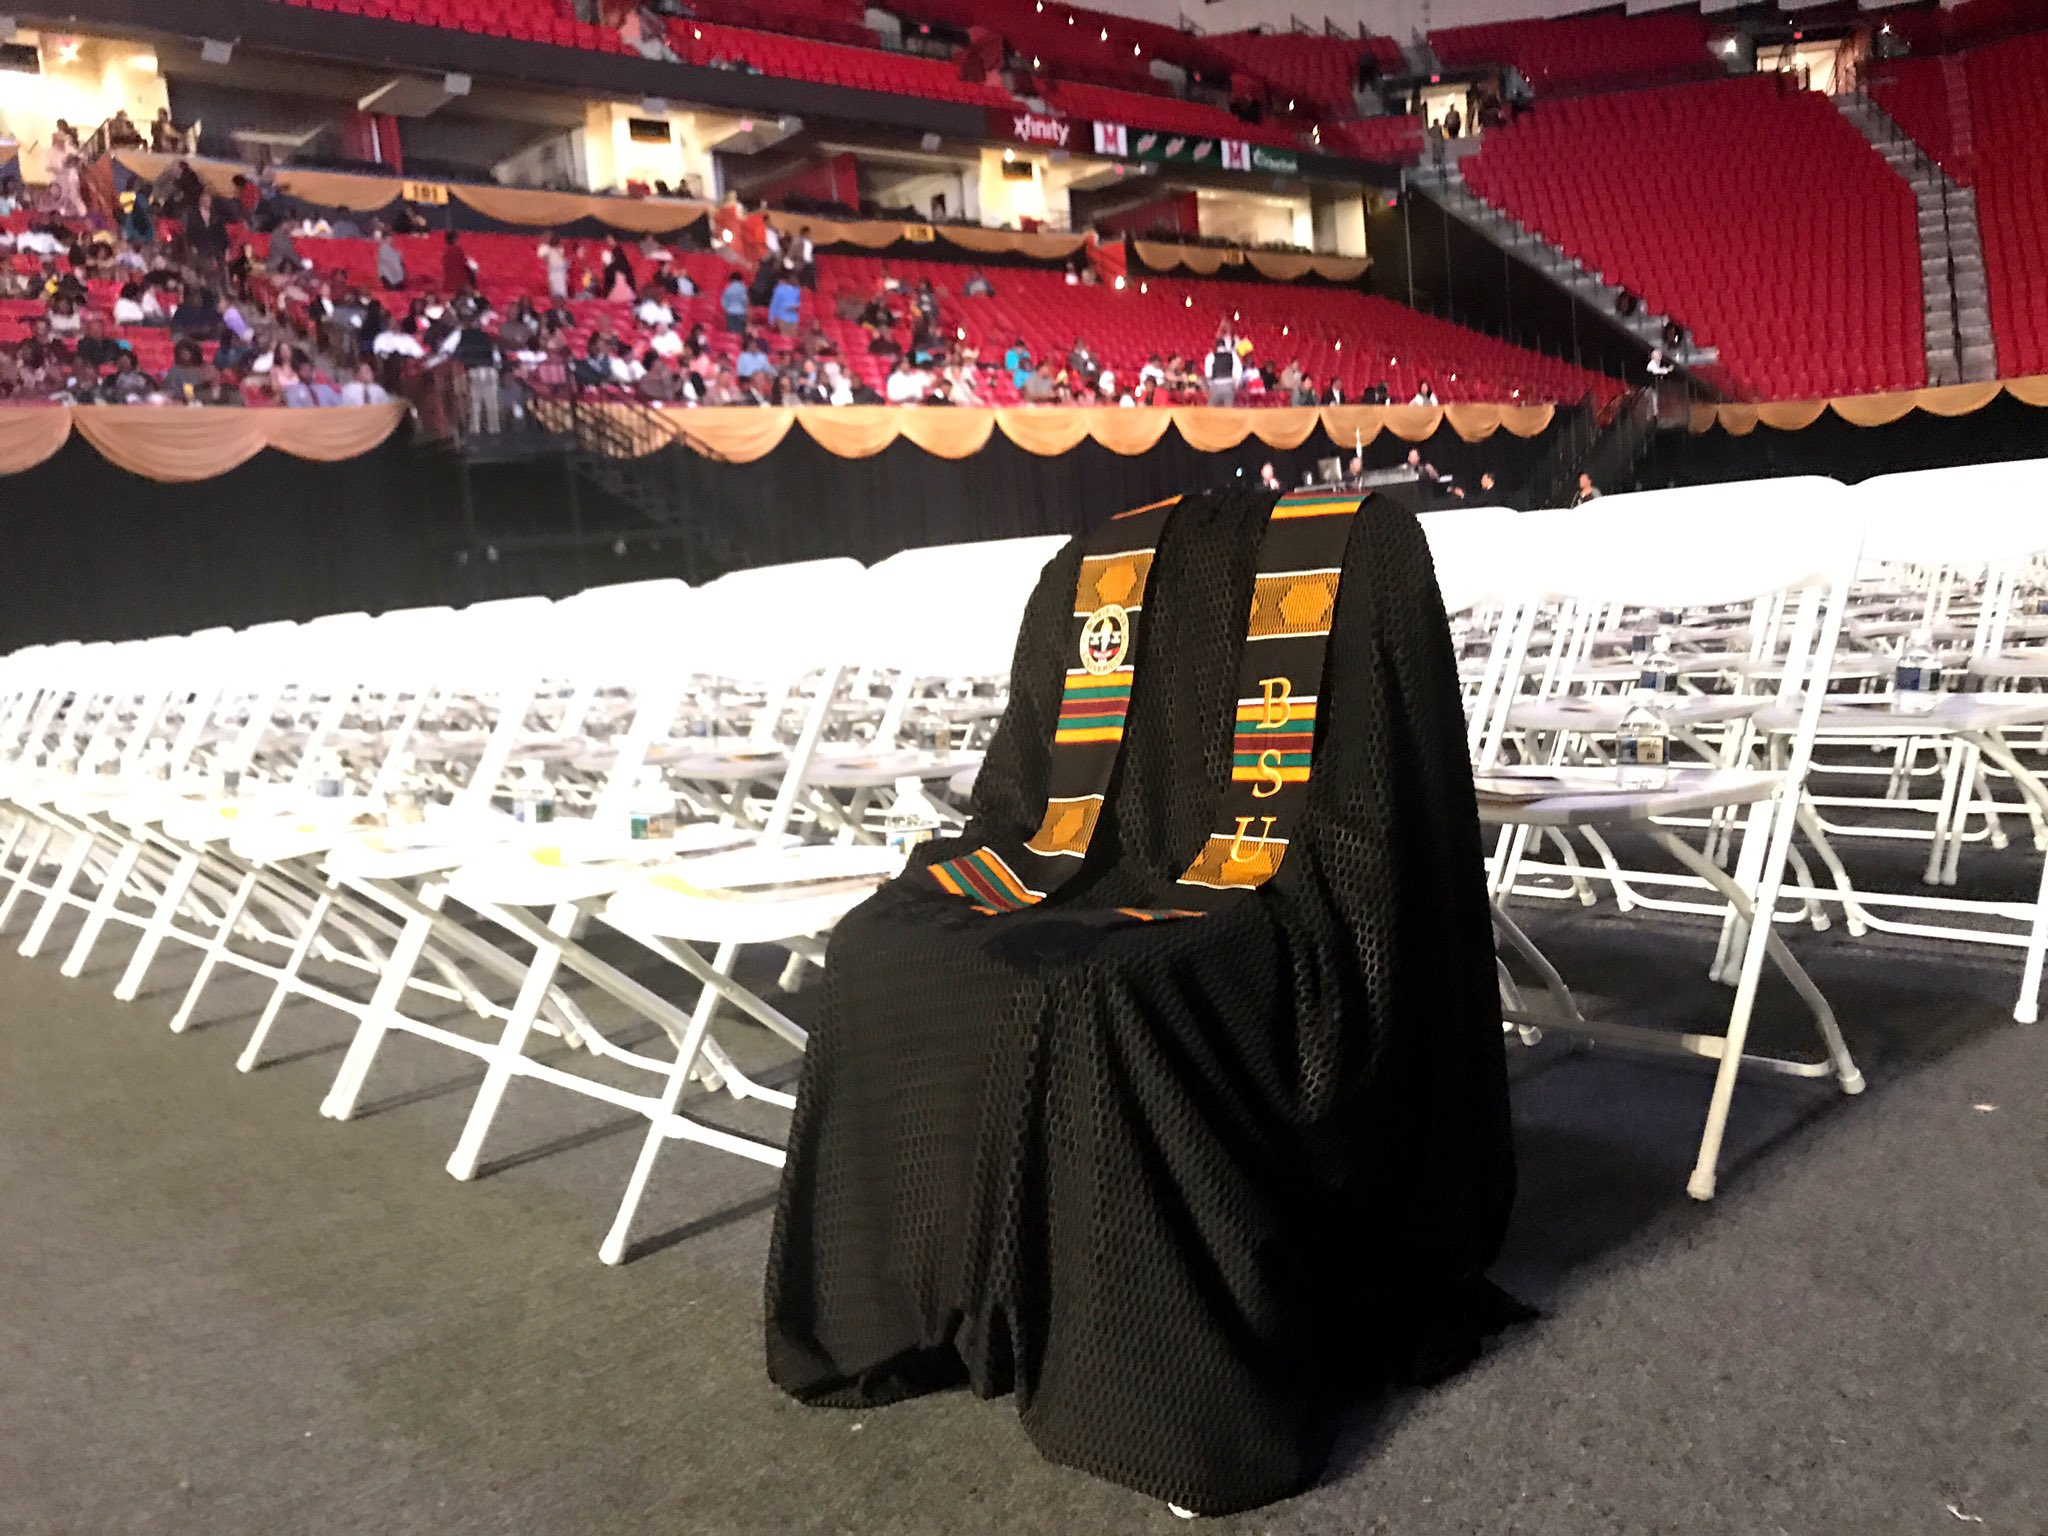 Richard Collins III's graduation gown draped over front row chairs at Bowie State University ceremony.  He was murdered Saturday. https://t.co/dq7CsBzpLl